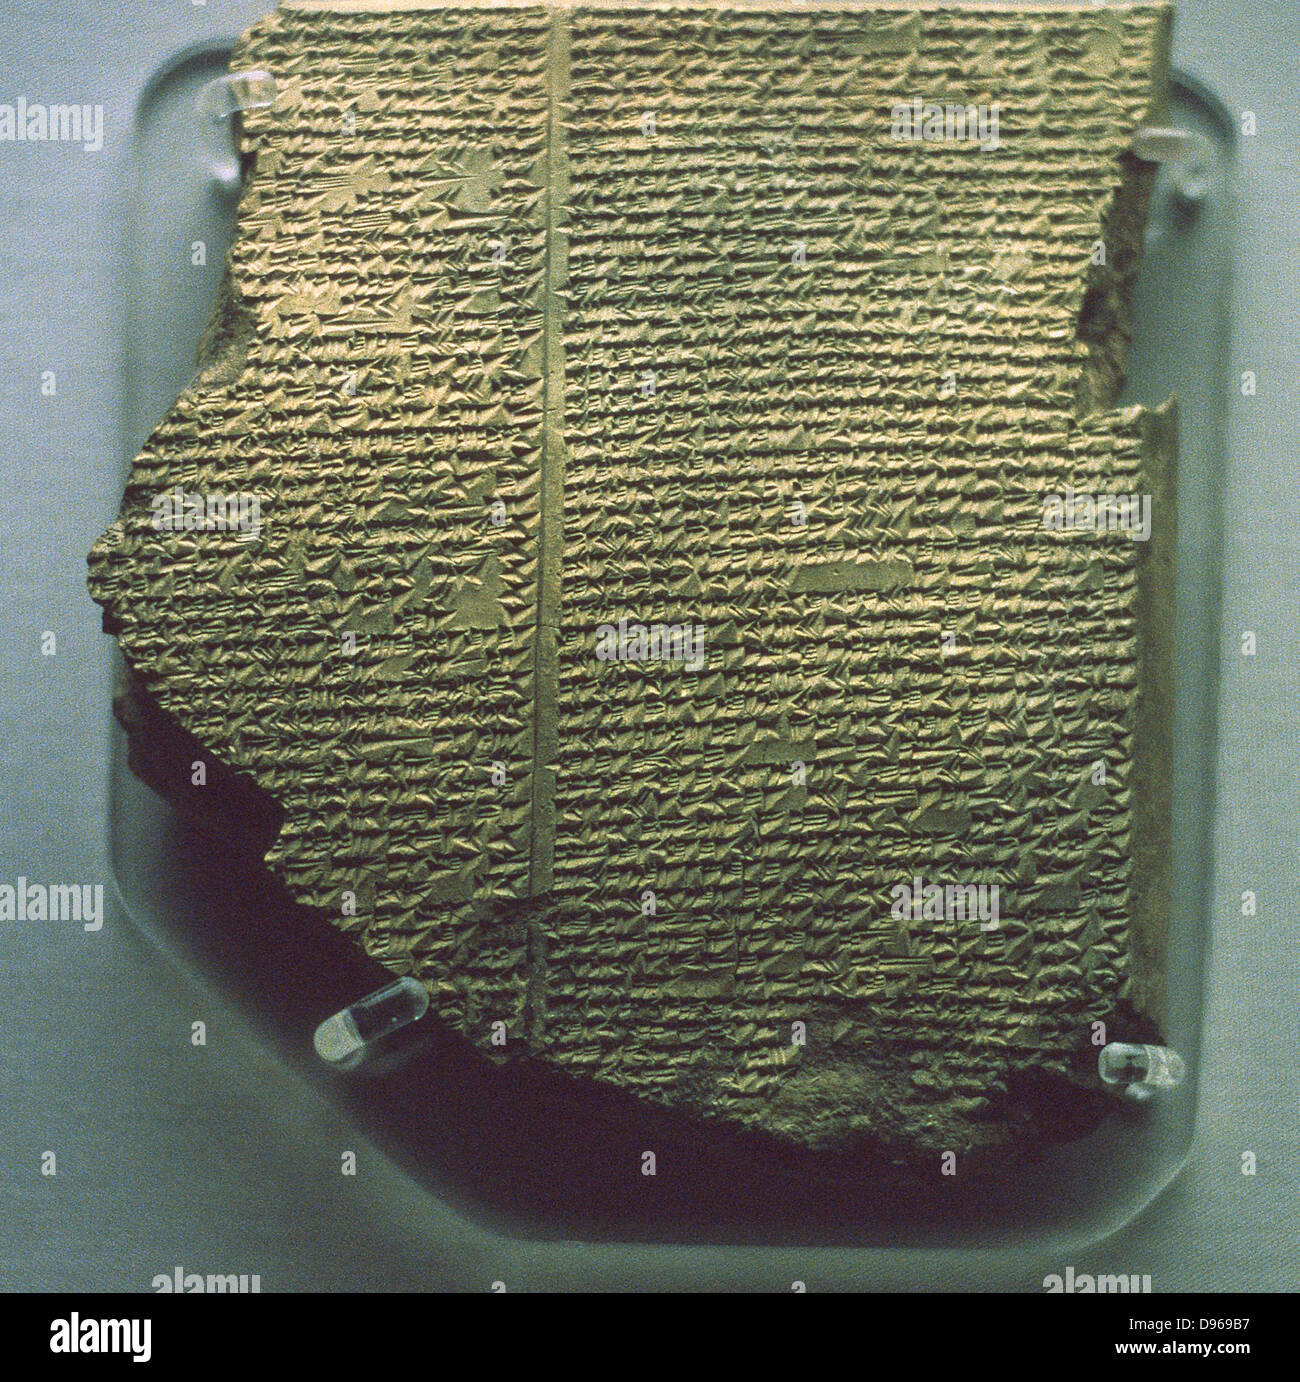 Cuneiform tablet with Gilgamesh Flood Epic. Babylonian, c17th century BC. Southern Iraq. British Museum - Stock Image